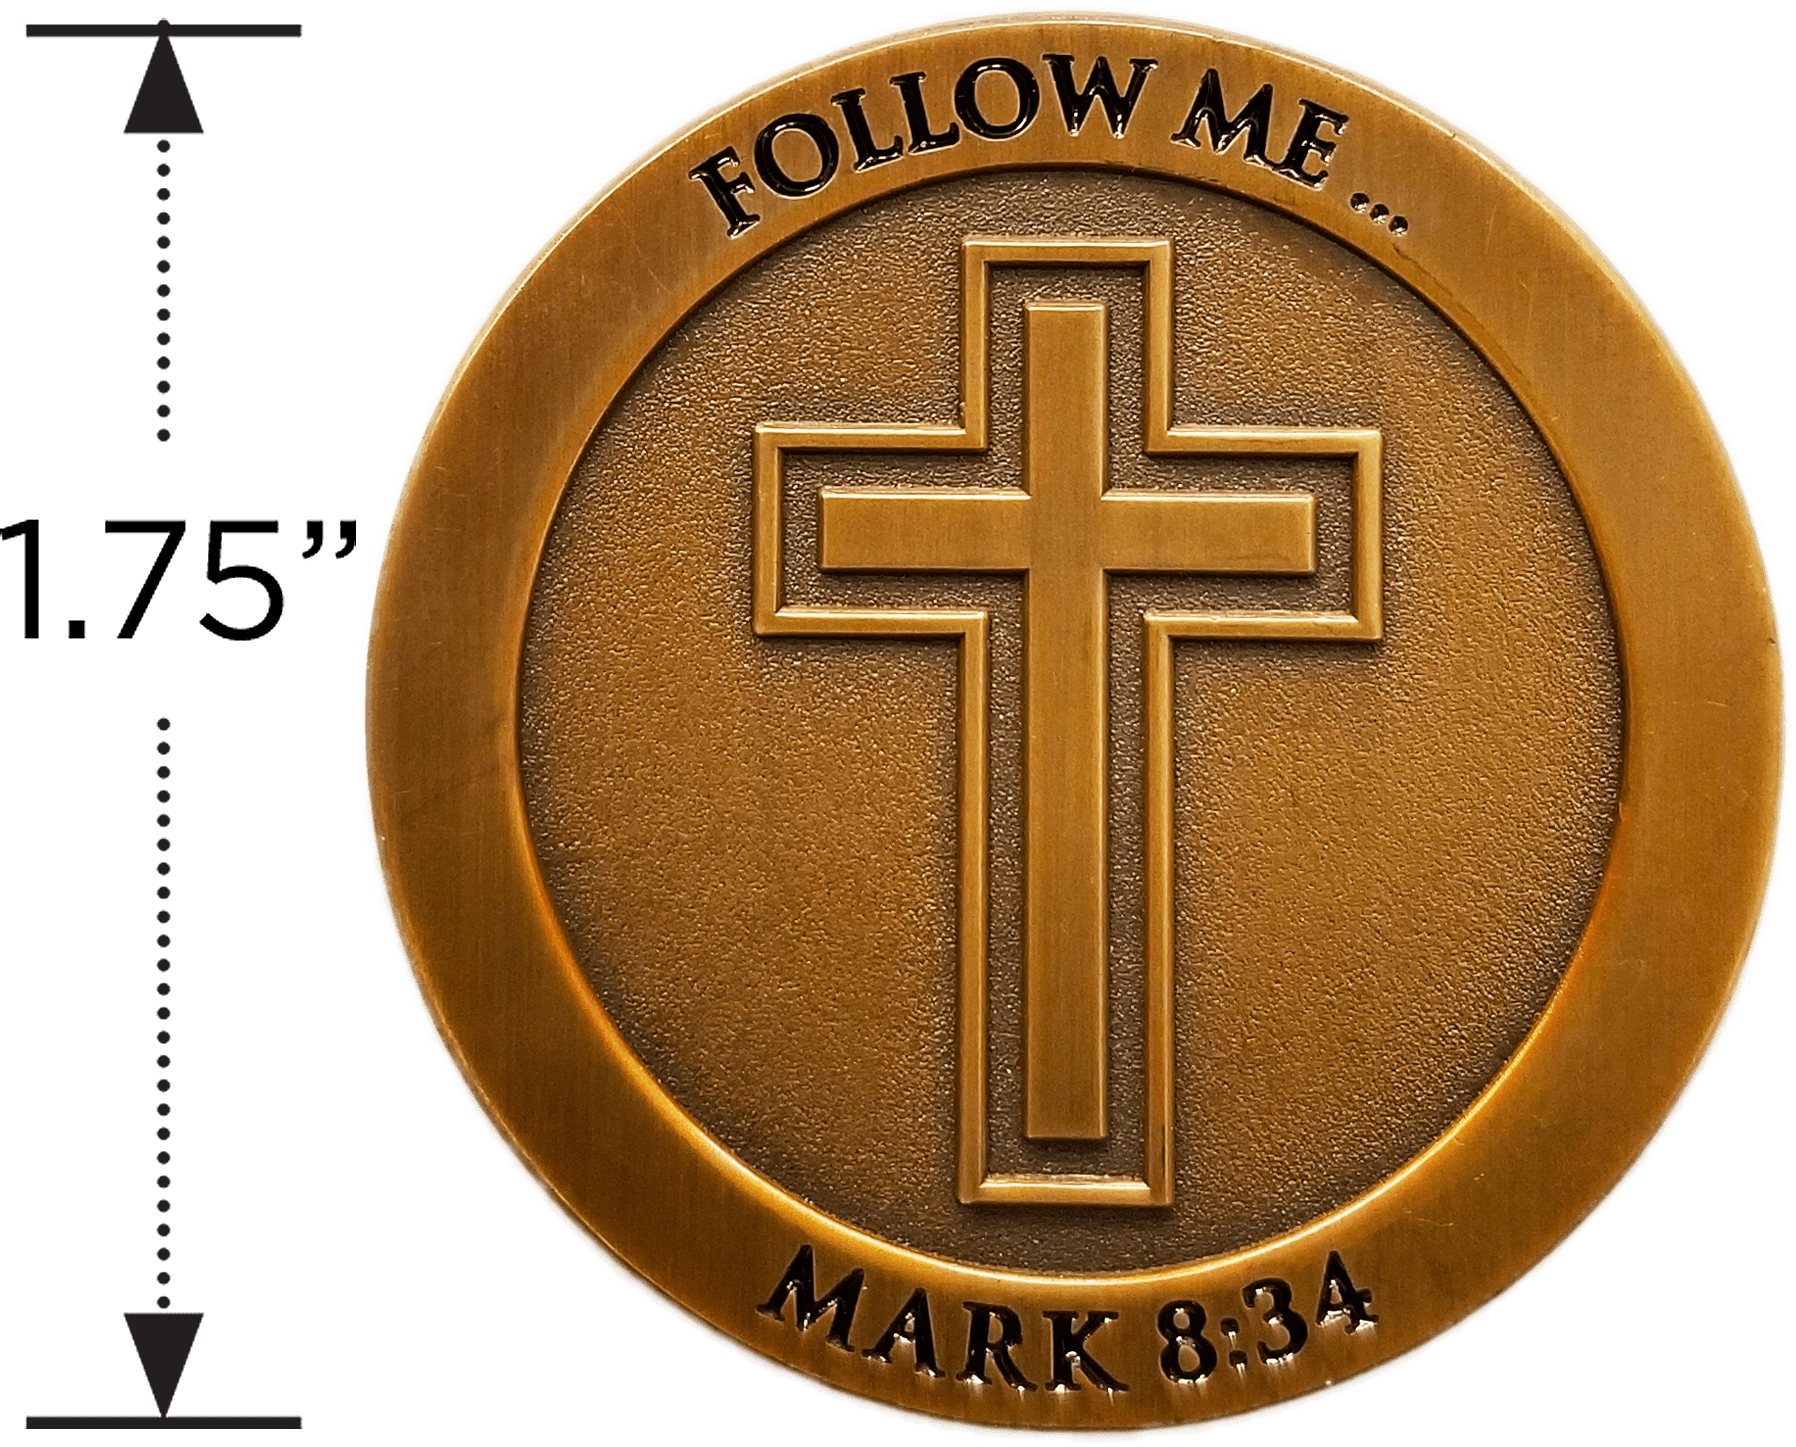 Follow Me Antique Gold Plated Christian Challenge Coin measured to show size diameter